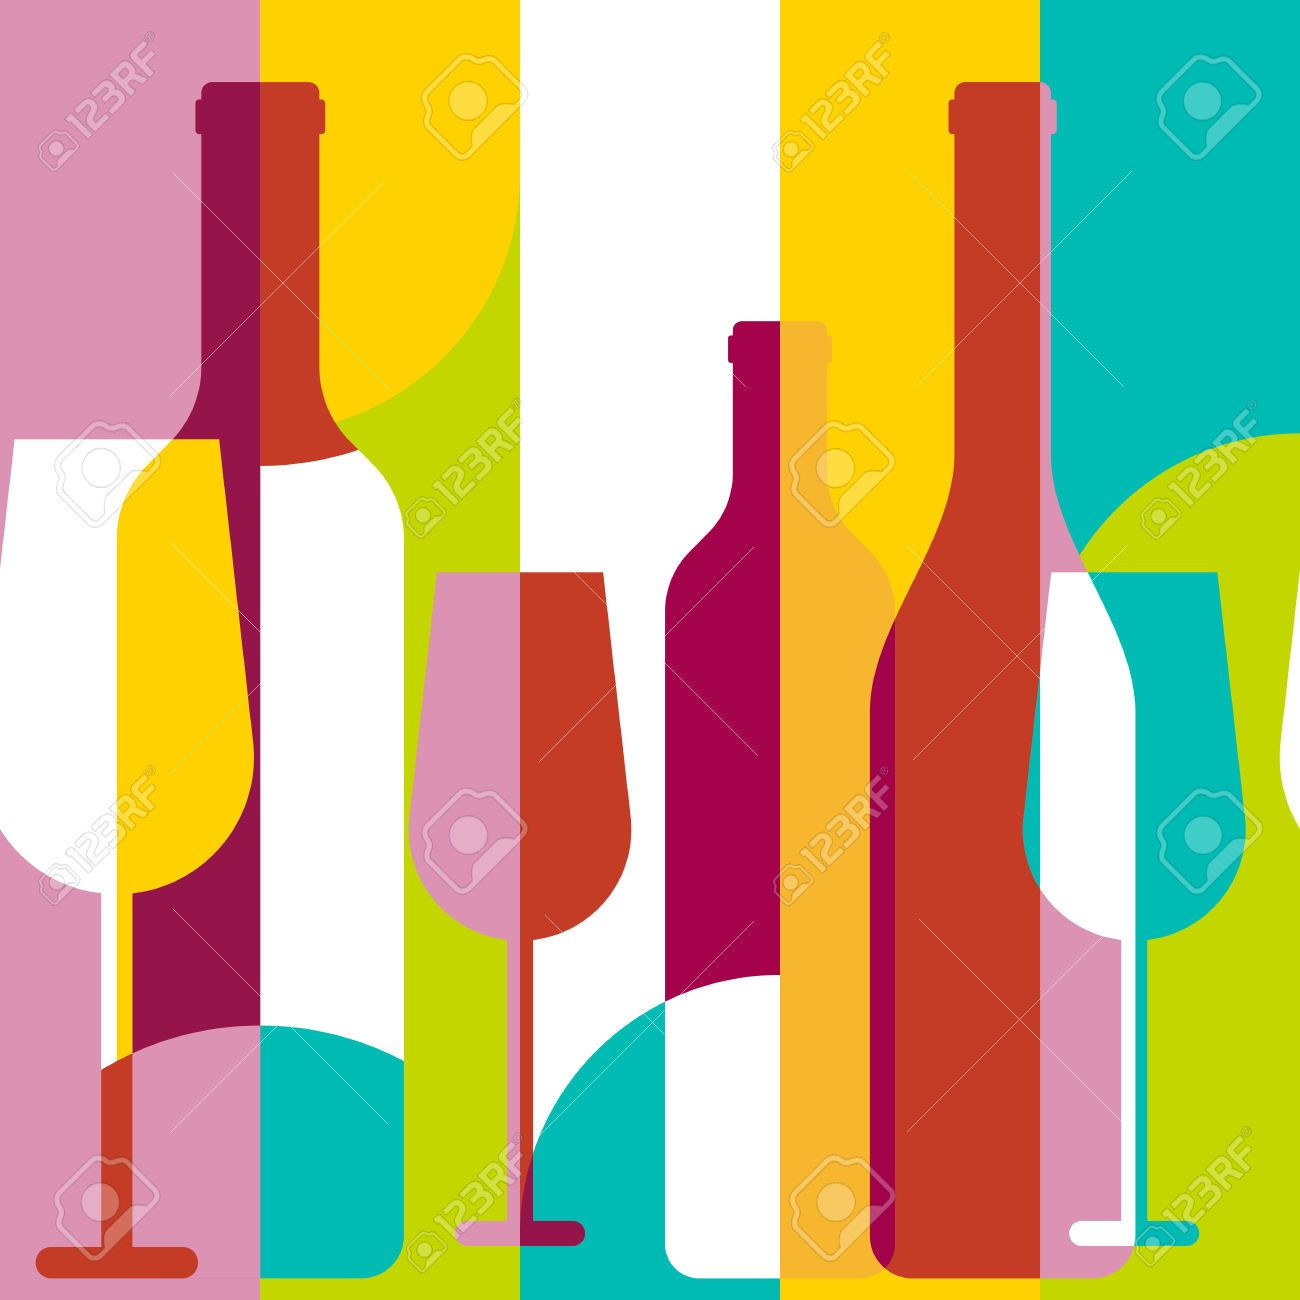 1300x1300 Wine Bottle Silhouette Stock Photos Images, Royalty Free Wine